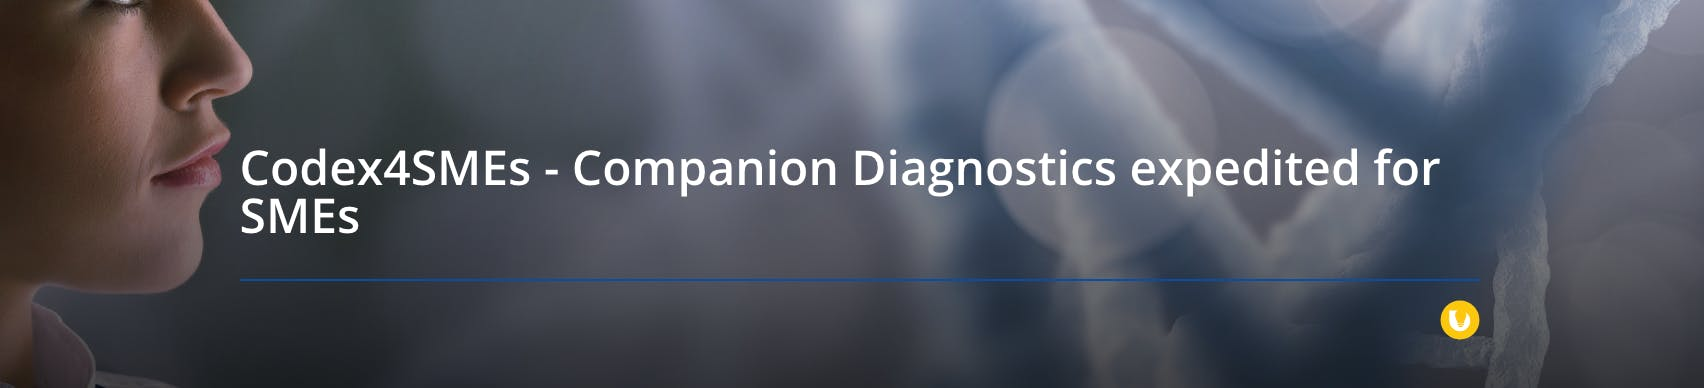 Companion Diagnostics Codex4SMEs Roadshow